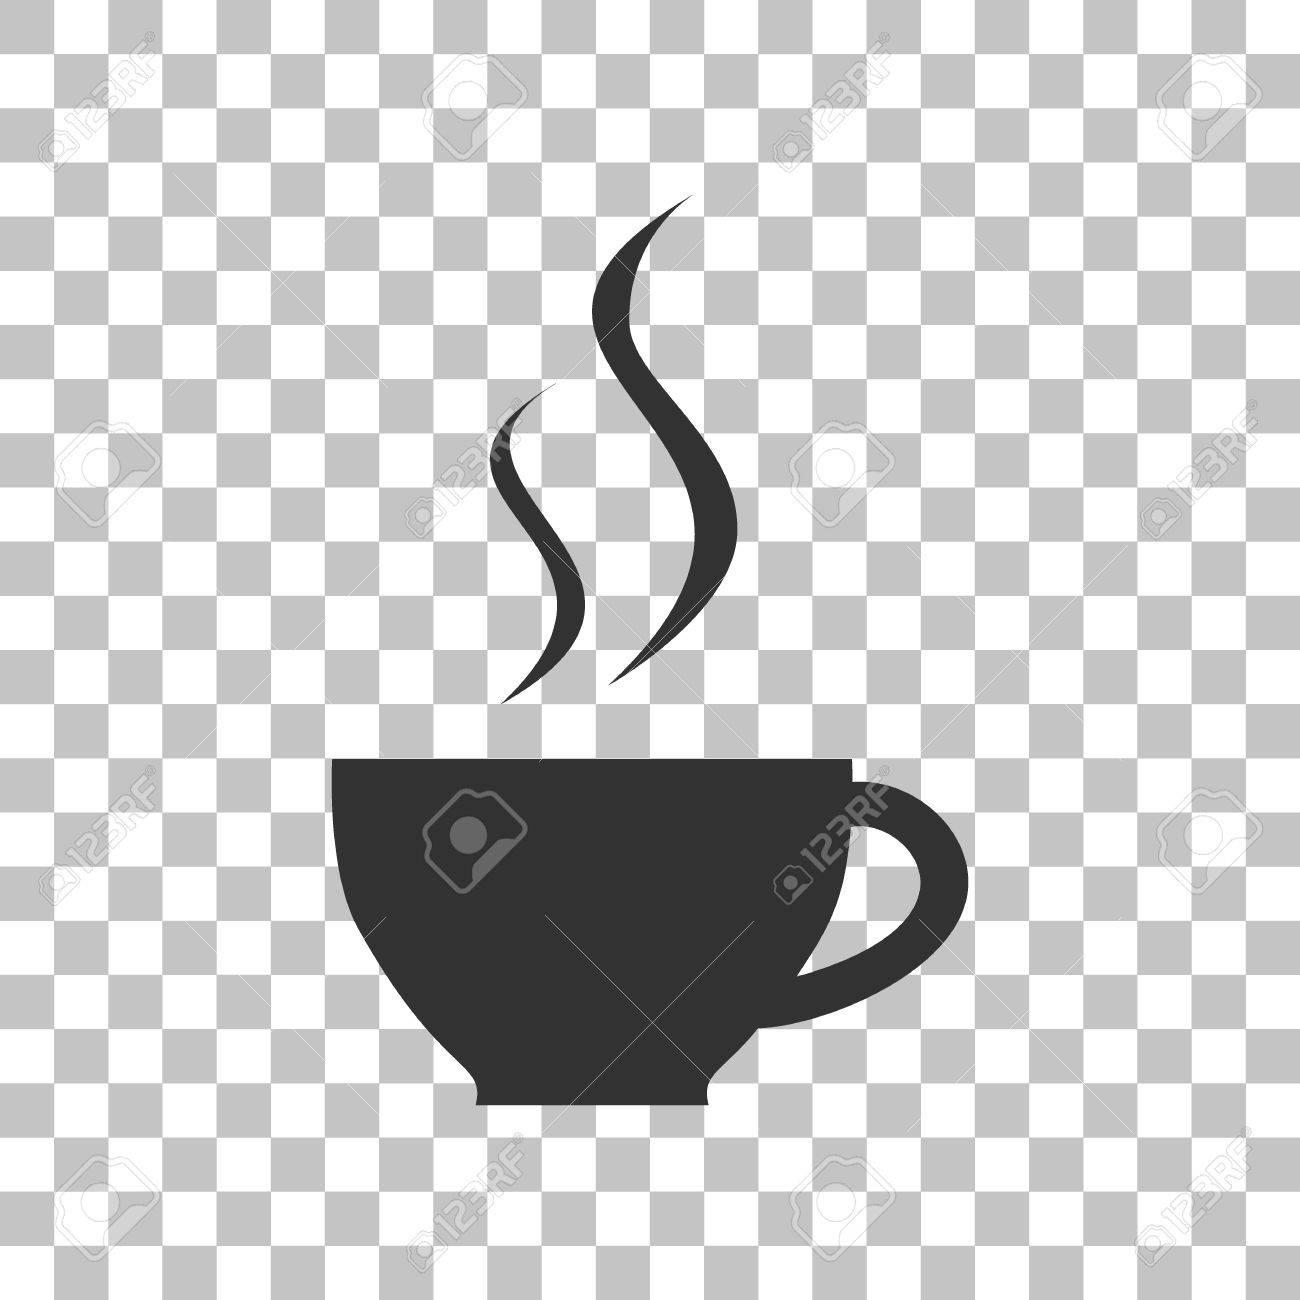 Cup of coffee sign. Dark gray icon on transparent background..